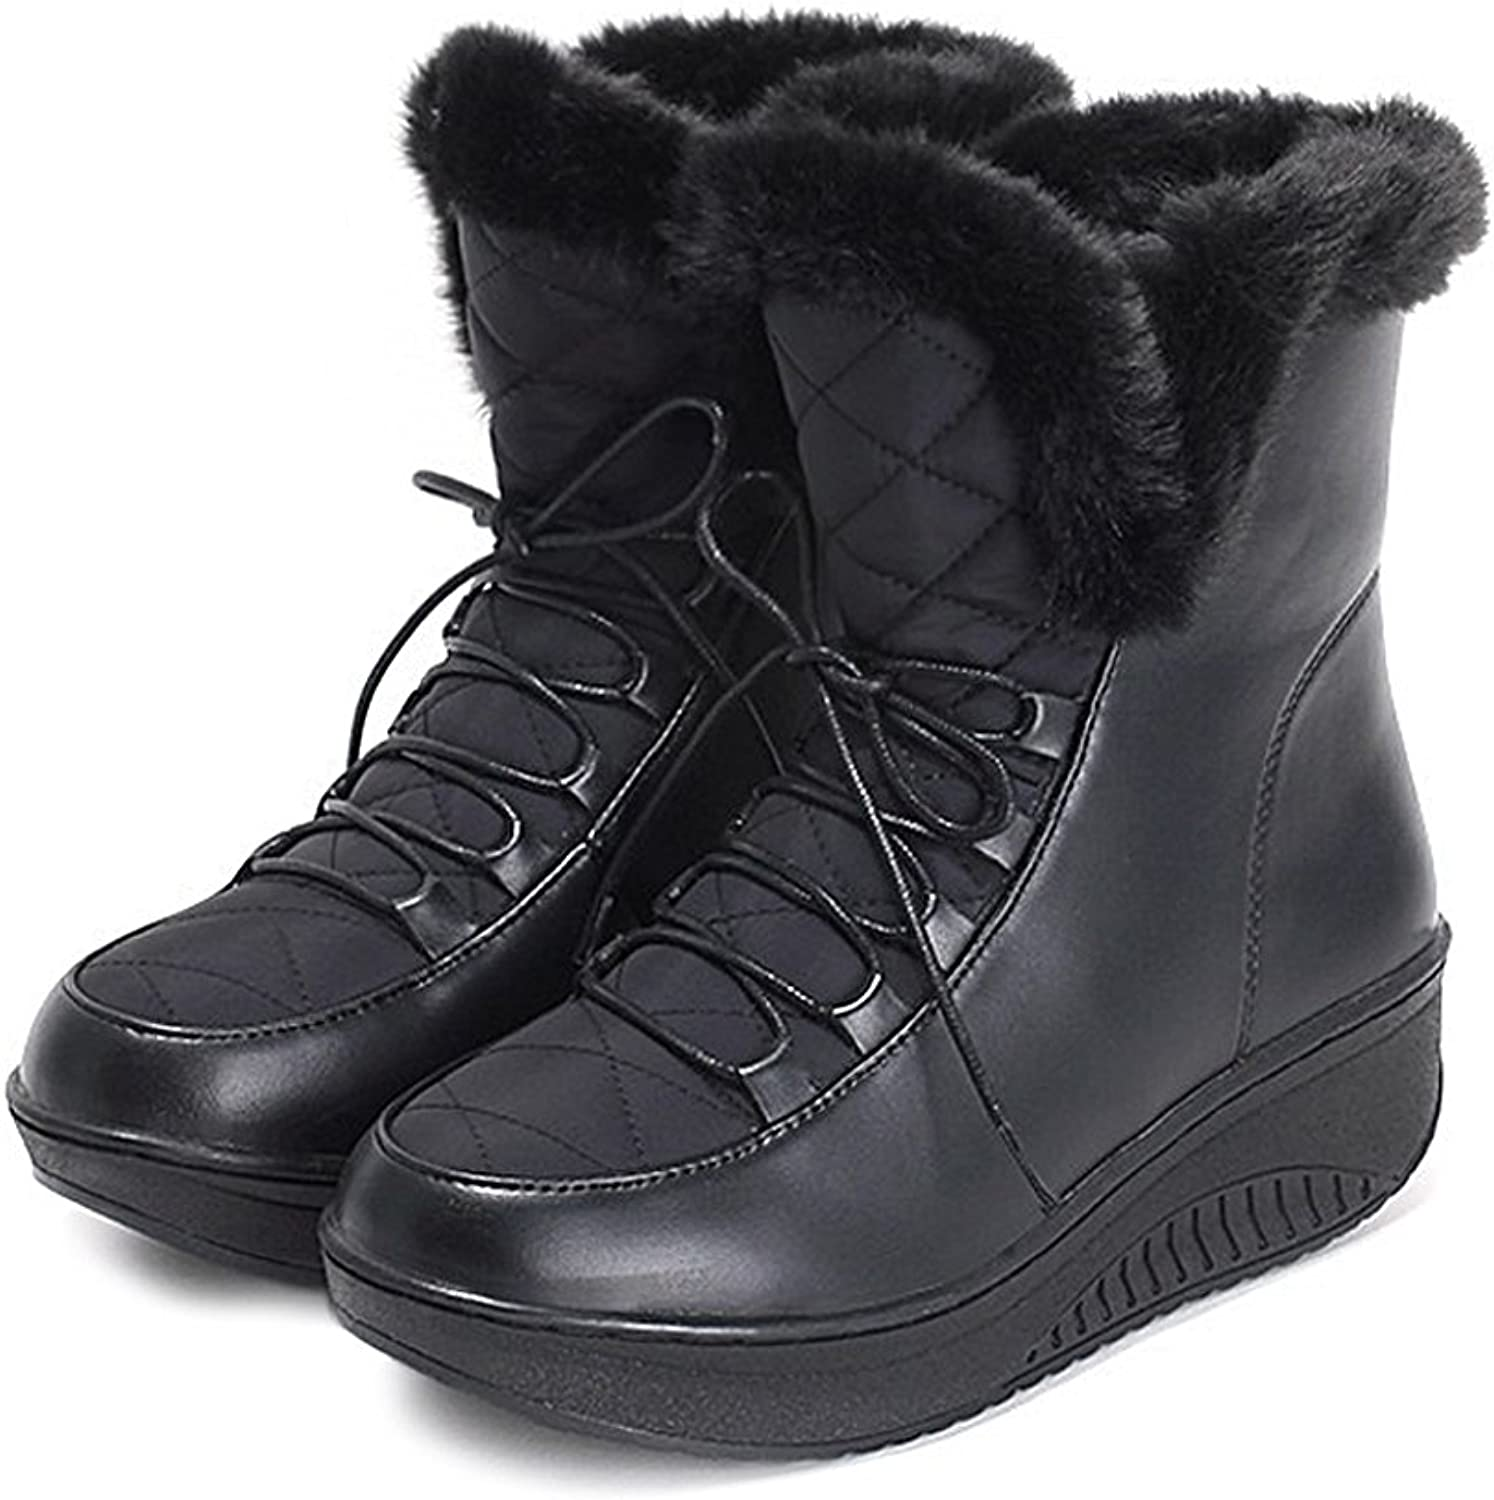 Women's Winter Fur Snow Boots Flat Round Solid Ankle Slip-on Bonded Leather Insole